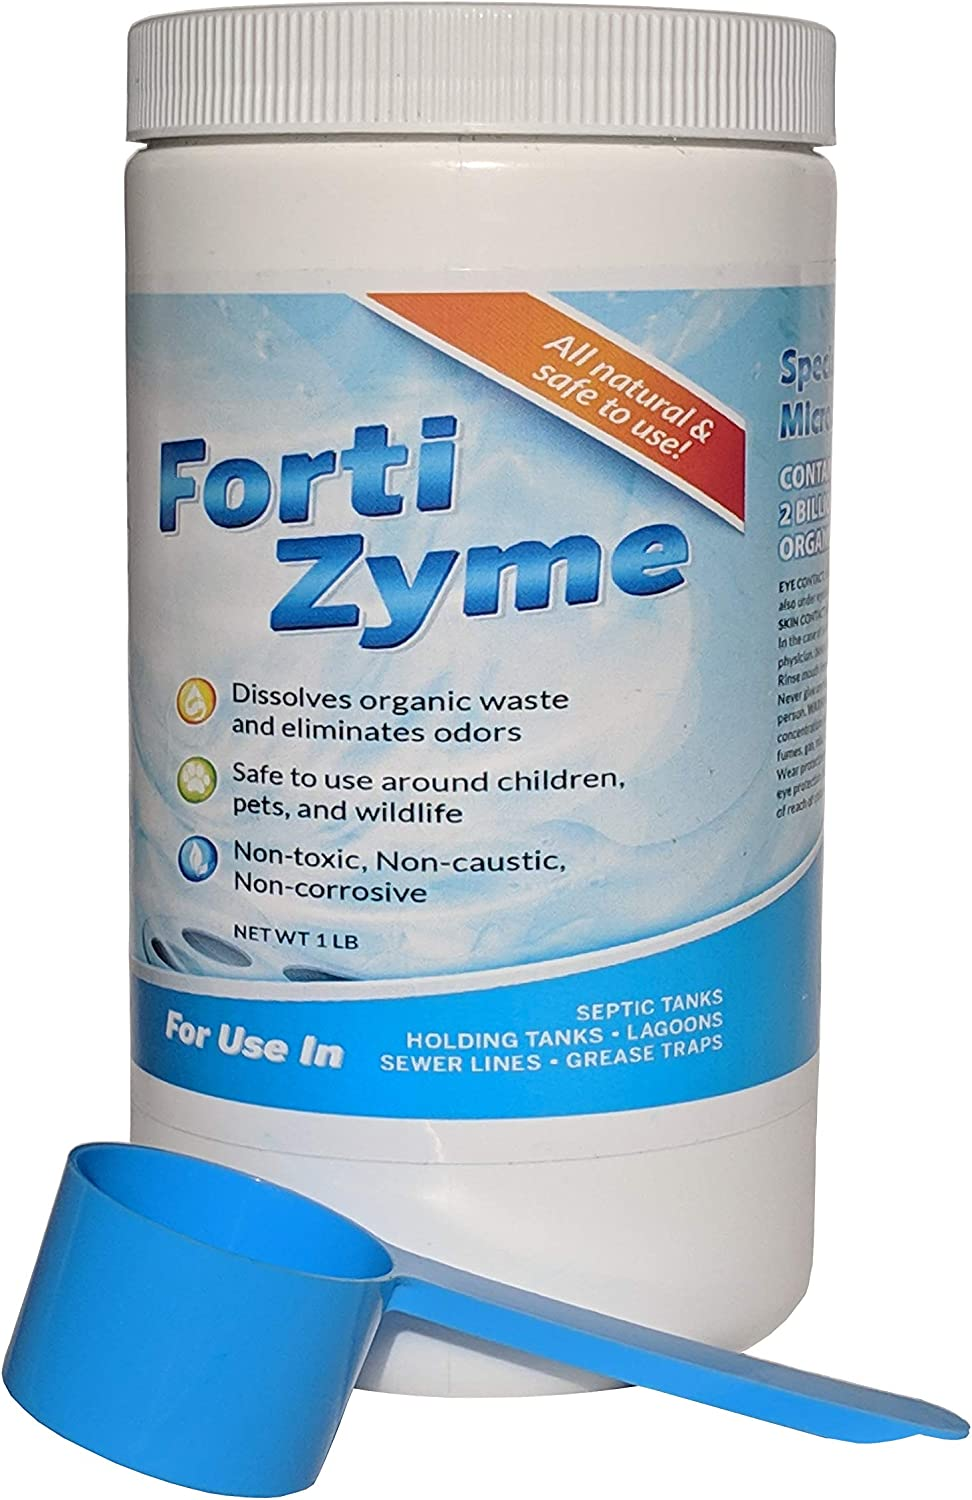 FortiZyme Organic Drain Cleaner and Septic Treatment - 1lb Canister With Scooper Contains up to 20 Months Treatment - Perfect for Septic Tanks, Clogged Drains, Grease Traps, Gray and Black Water Tanks